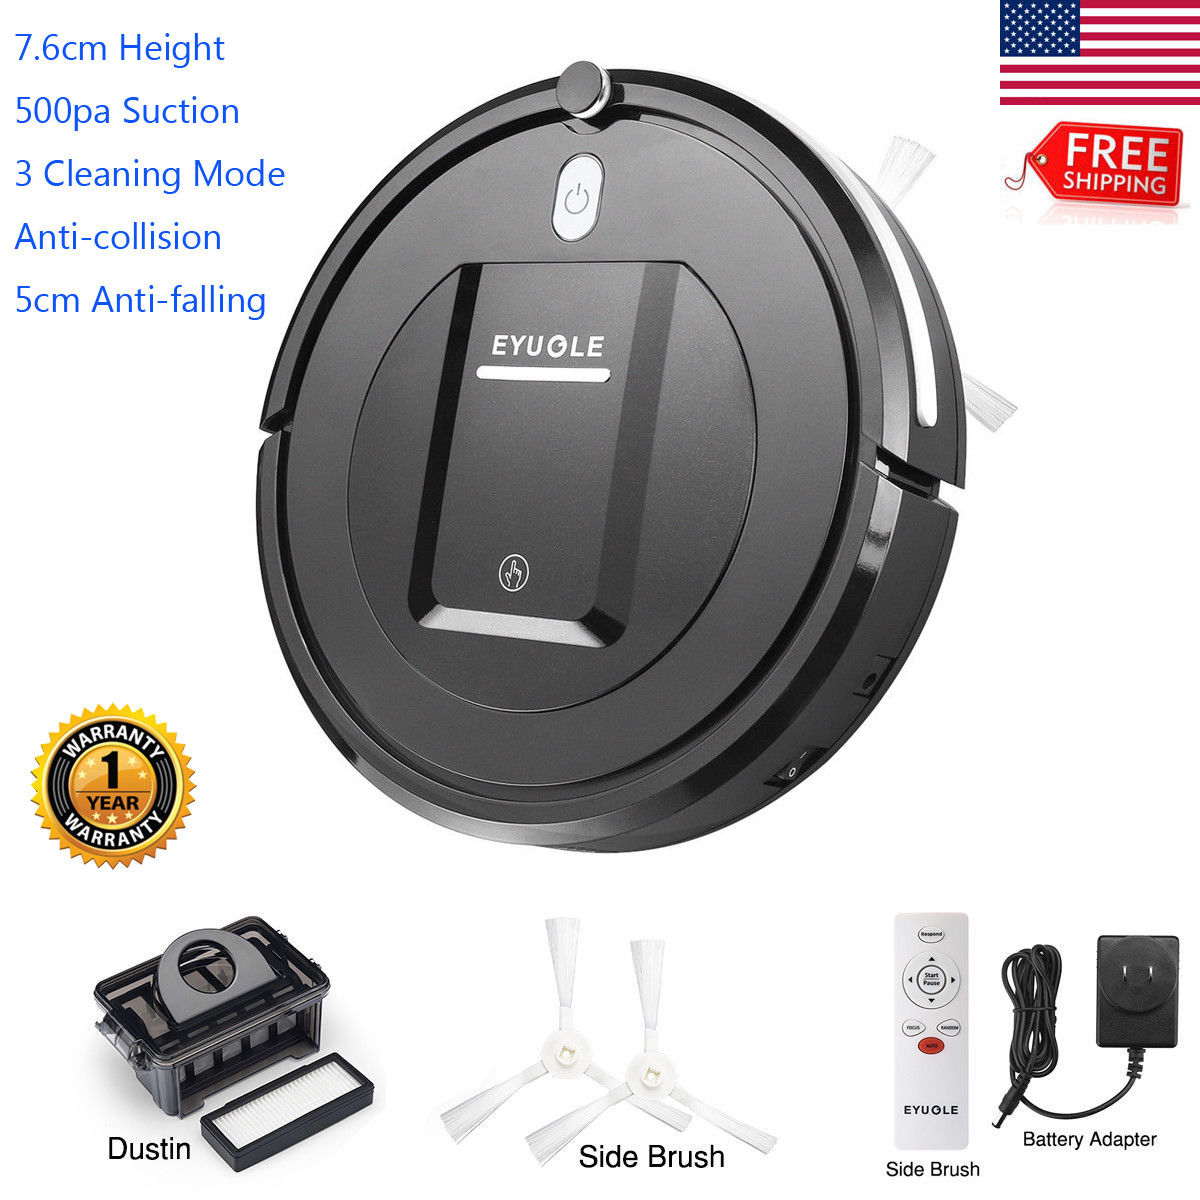 Usb Rechargeable Automatic Smart Floor Vacuum Cleaner Household Sweeping Machine Aspiradoras Para El Hogar Hot Be Friendly In Use Home Appliances